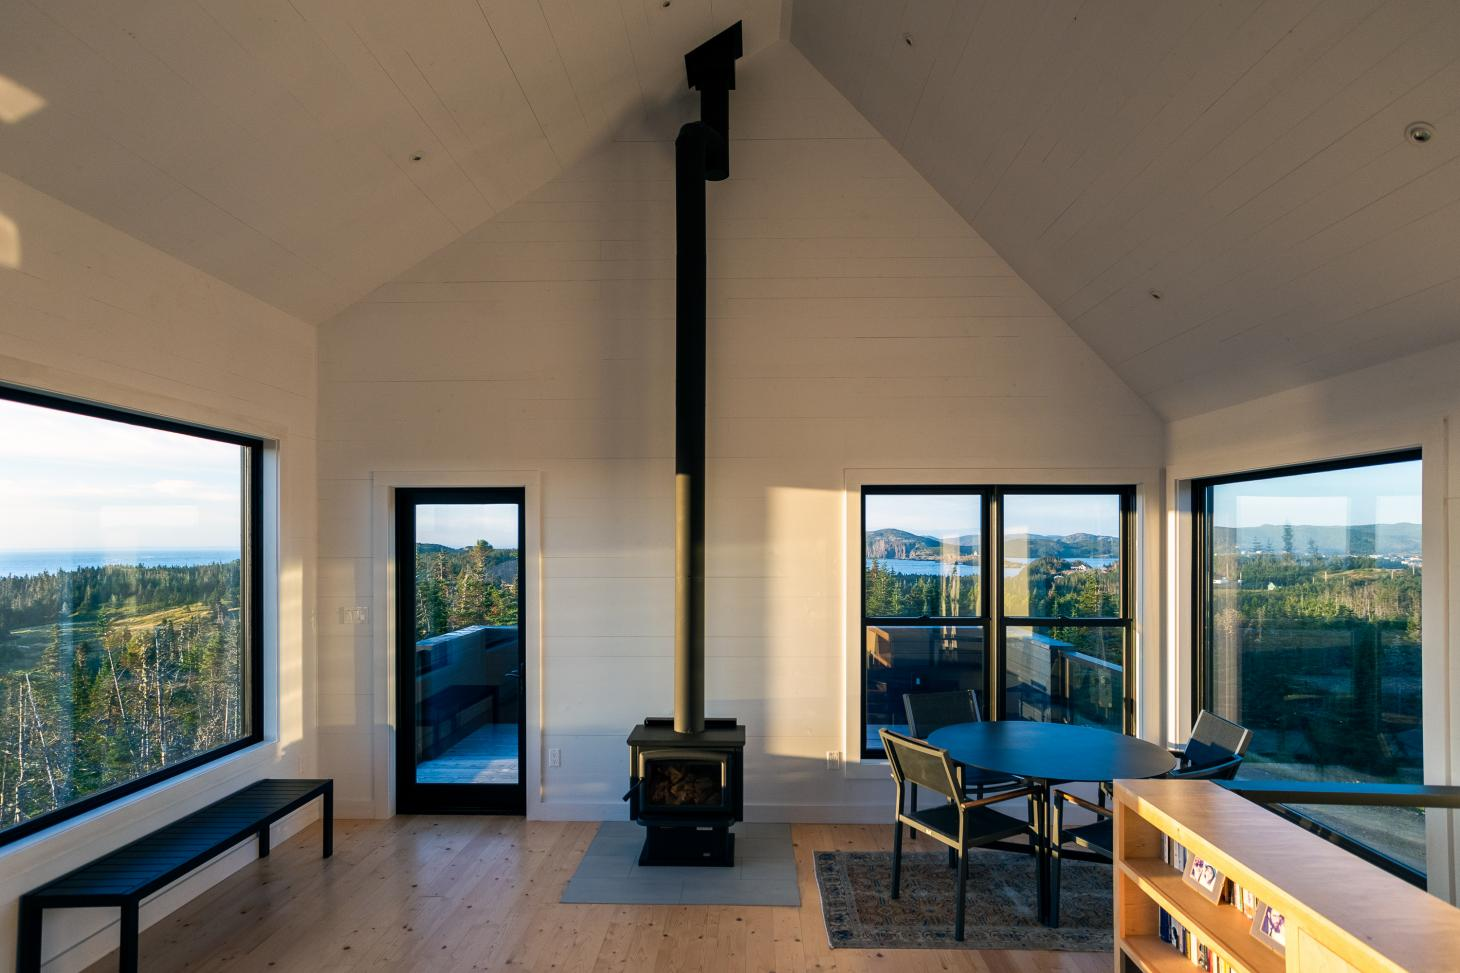 The open plan living space at the Halfway Hill House in Newfoundland